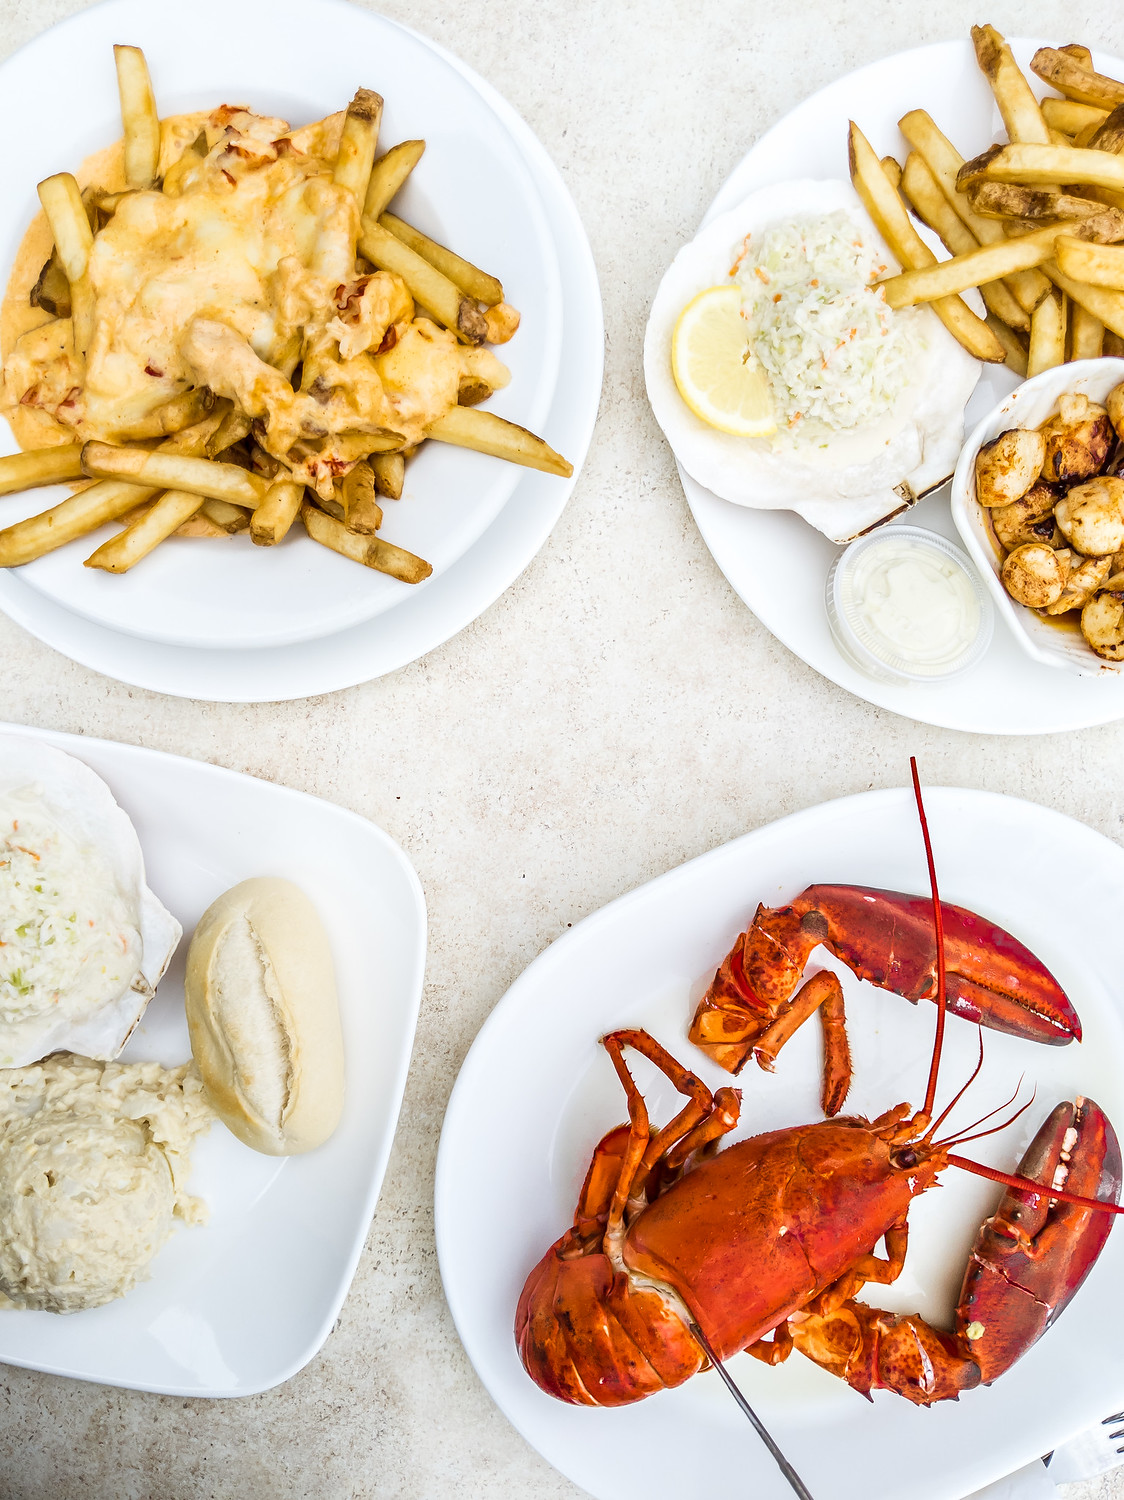 Halls Harbour Lobster Pound table with steamed lobster, scallops and lobster poutine.